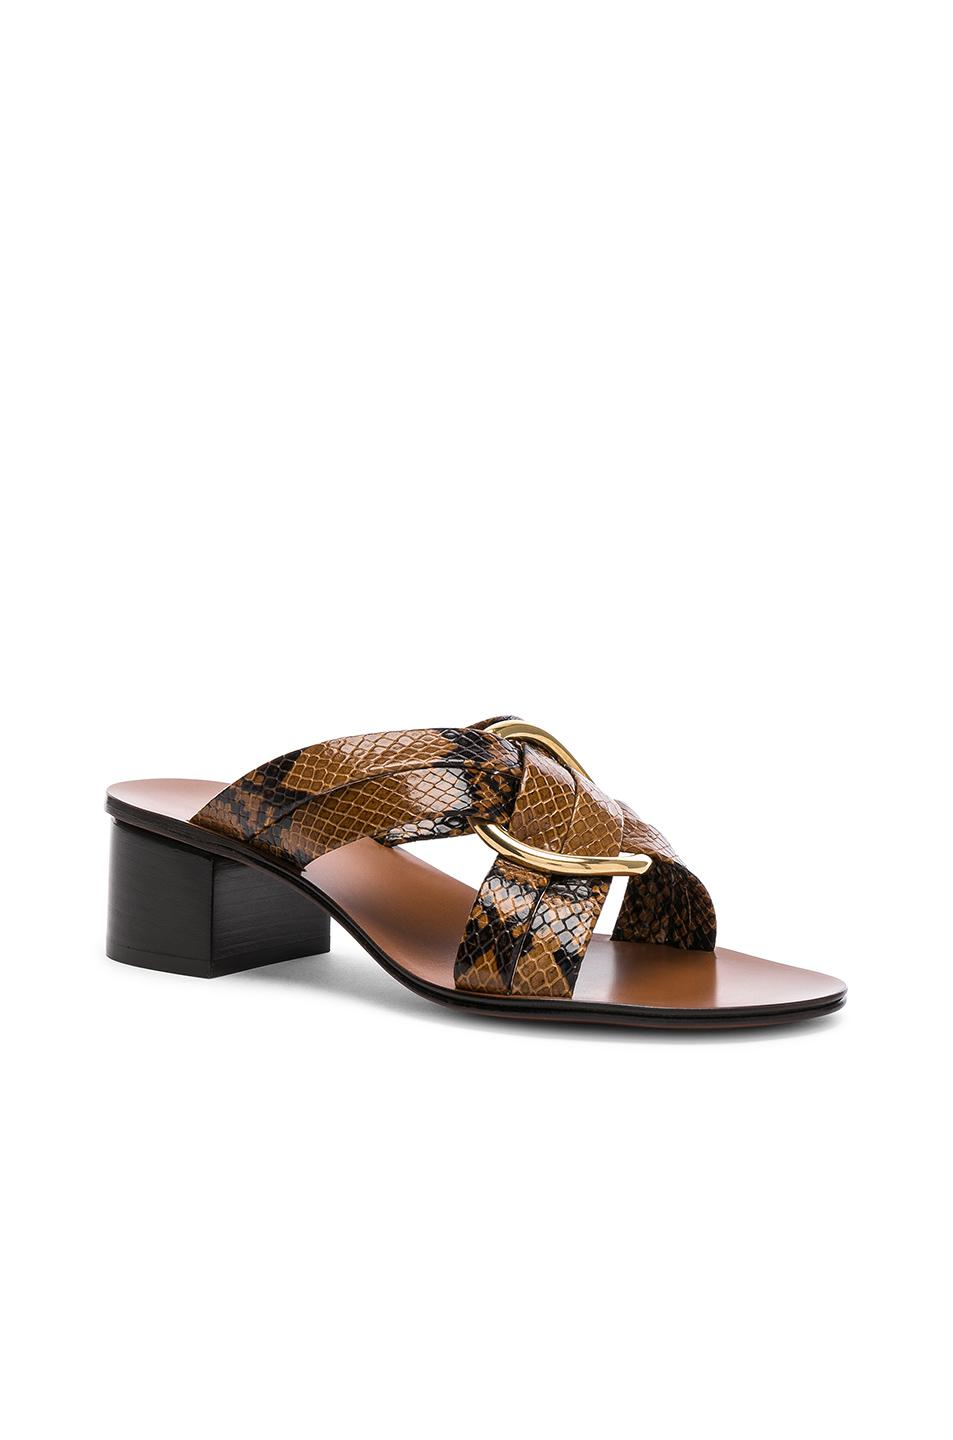 Chloé Rony Python Print Leather Cross Strap Mules in ,Animal Print.